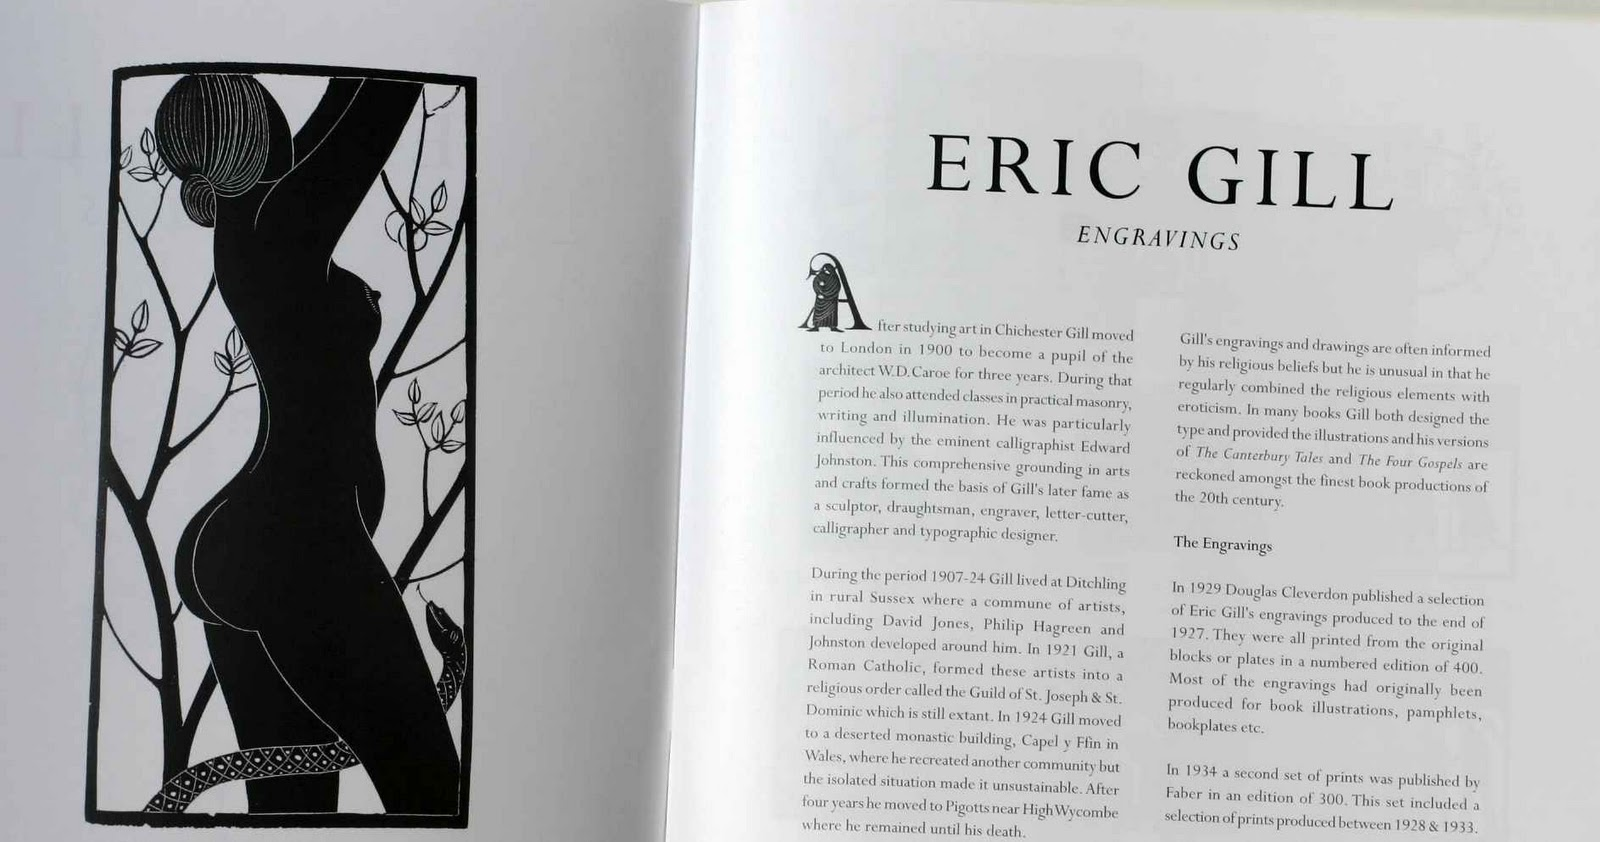 eric gill last essays Eric gill, author of othello last essays 7 copies eric gill: his life and art 7 copies gill, eric legal name: gill.